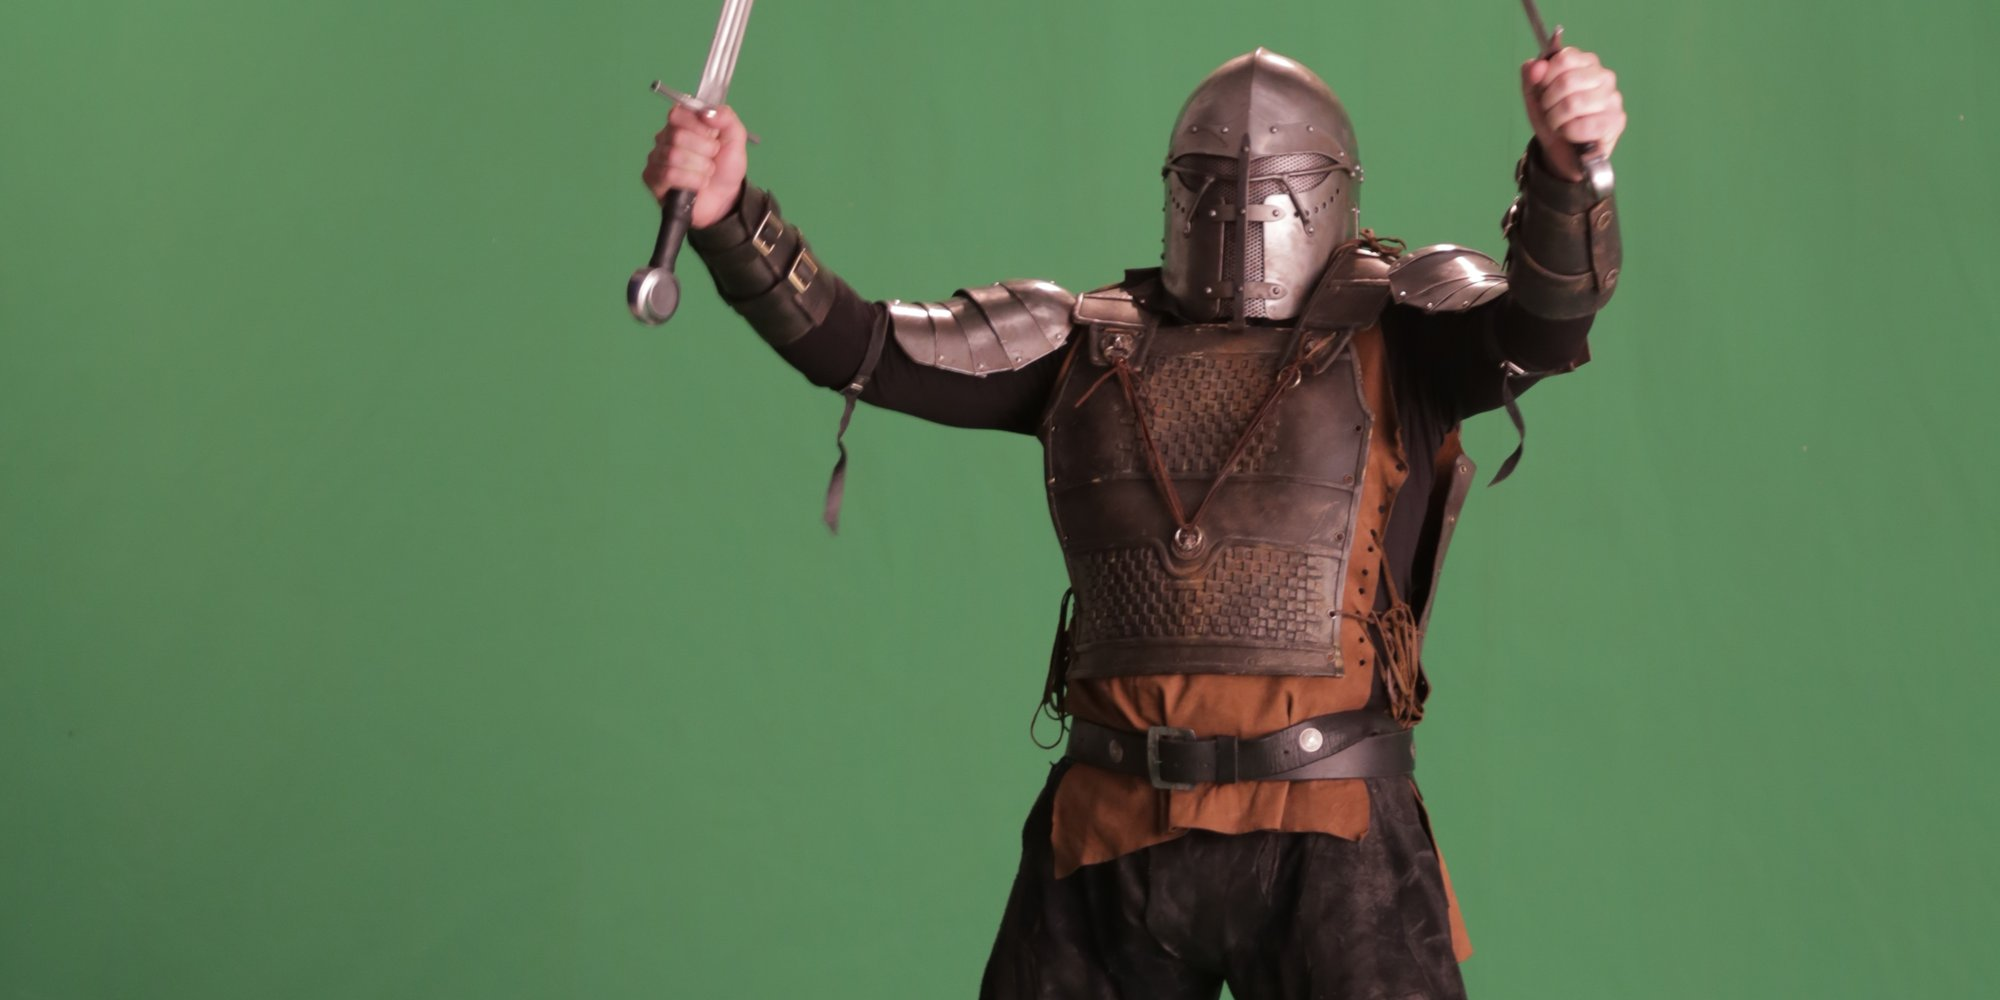 Our Executive Producer, Tim, got really into the whole 'warrior-green-screen' thing. We love him.